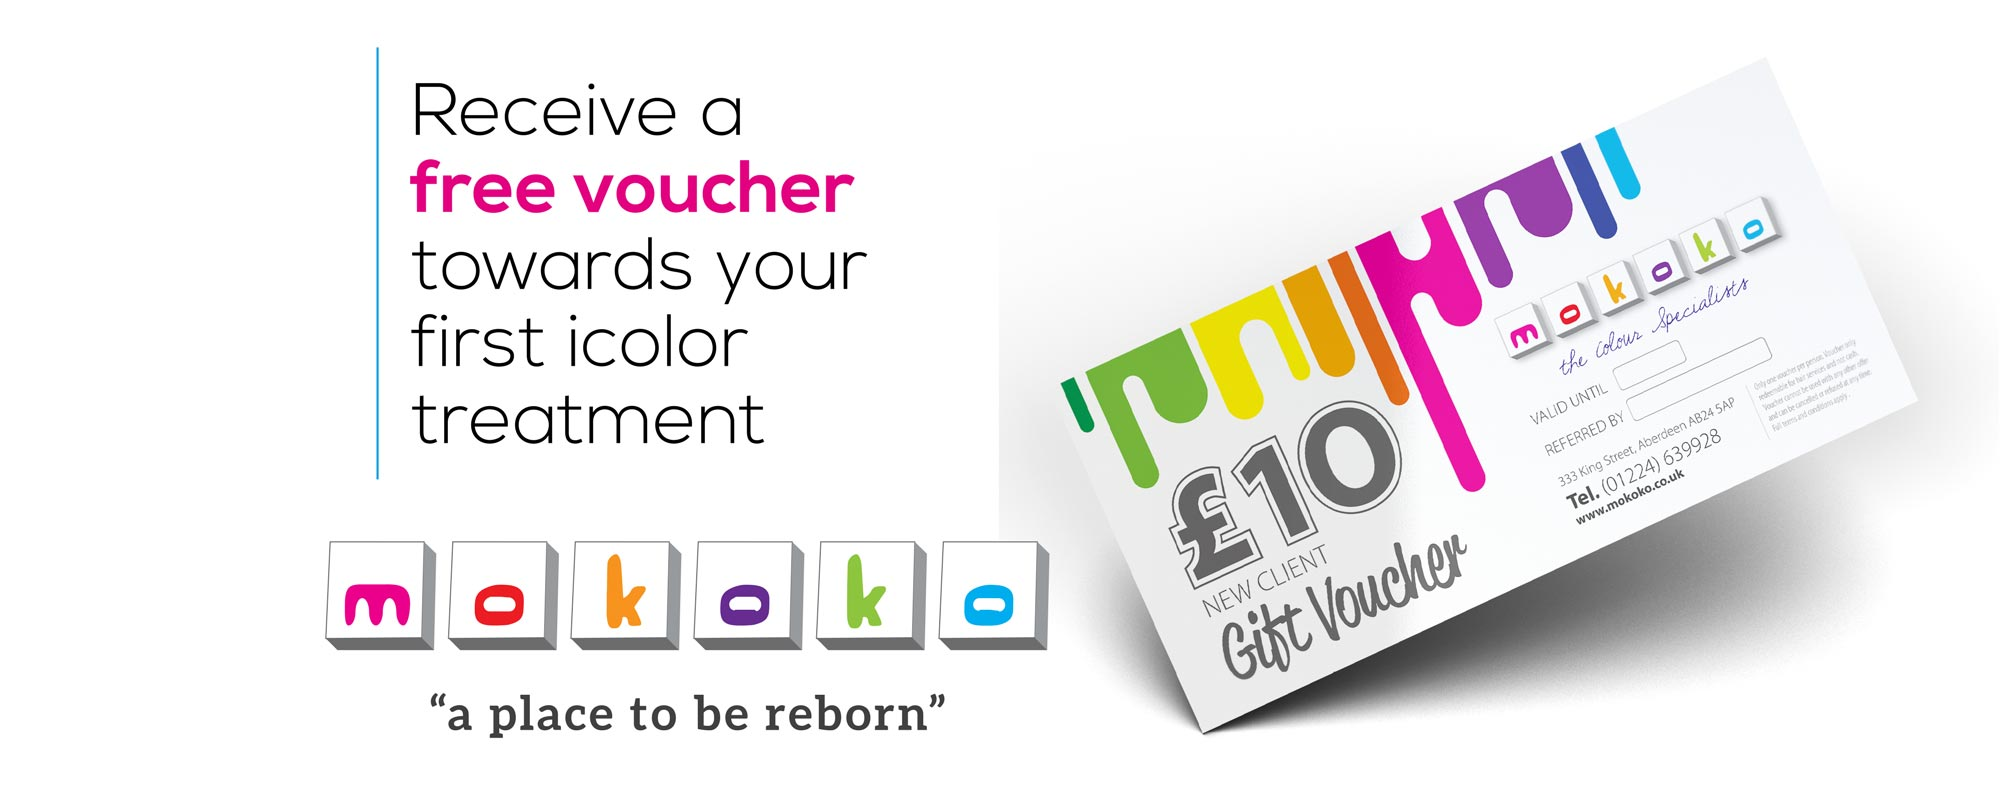 Image of a Mokoko voucher